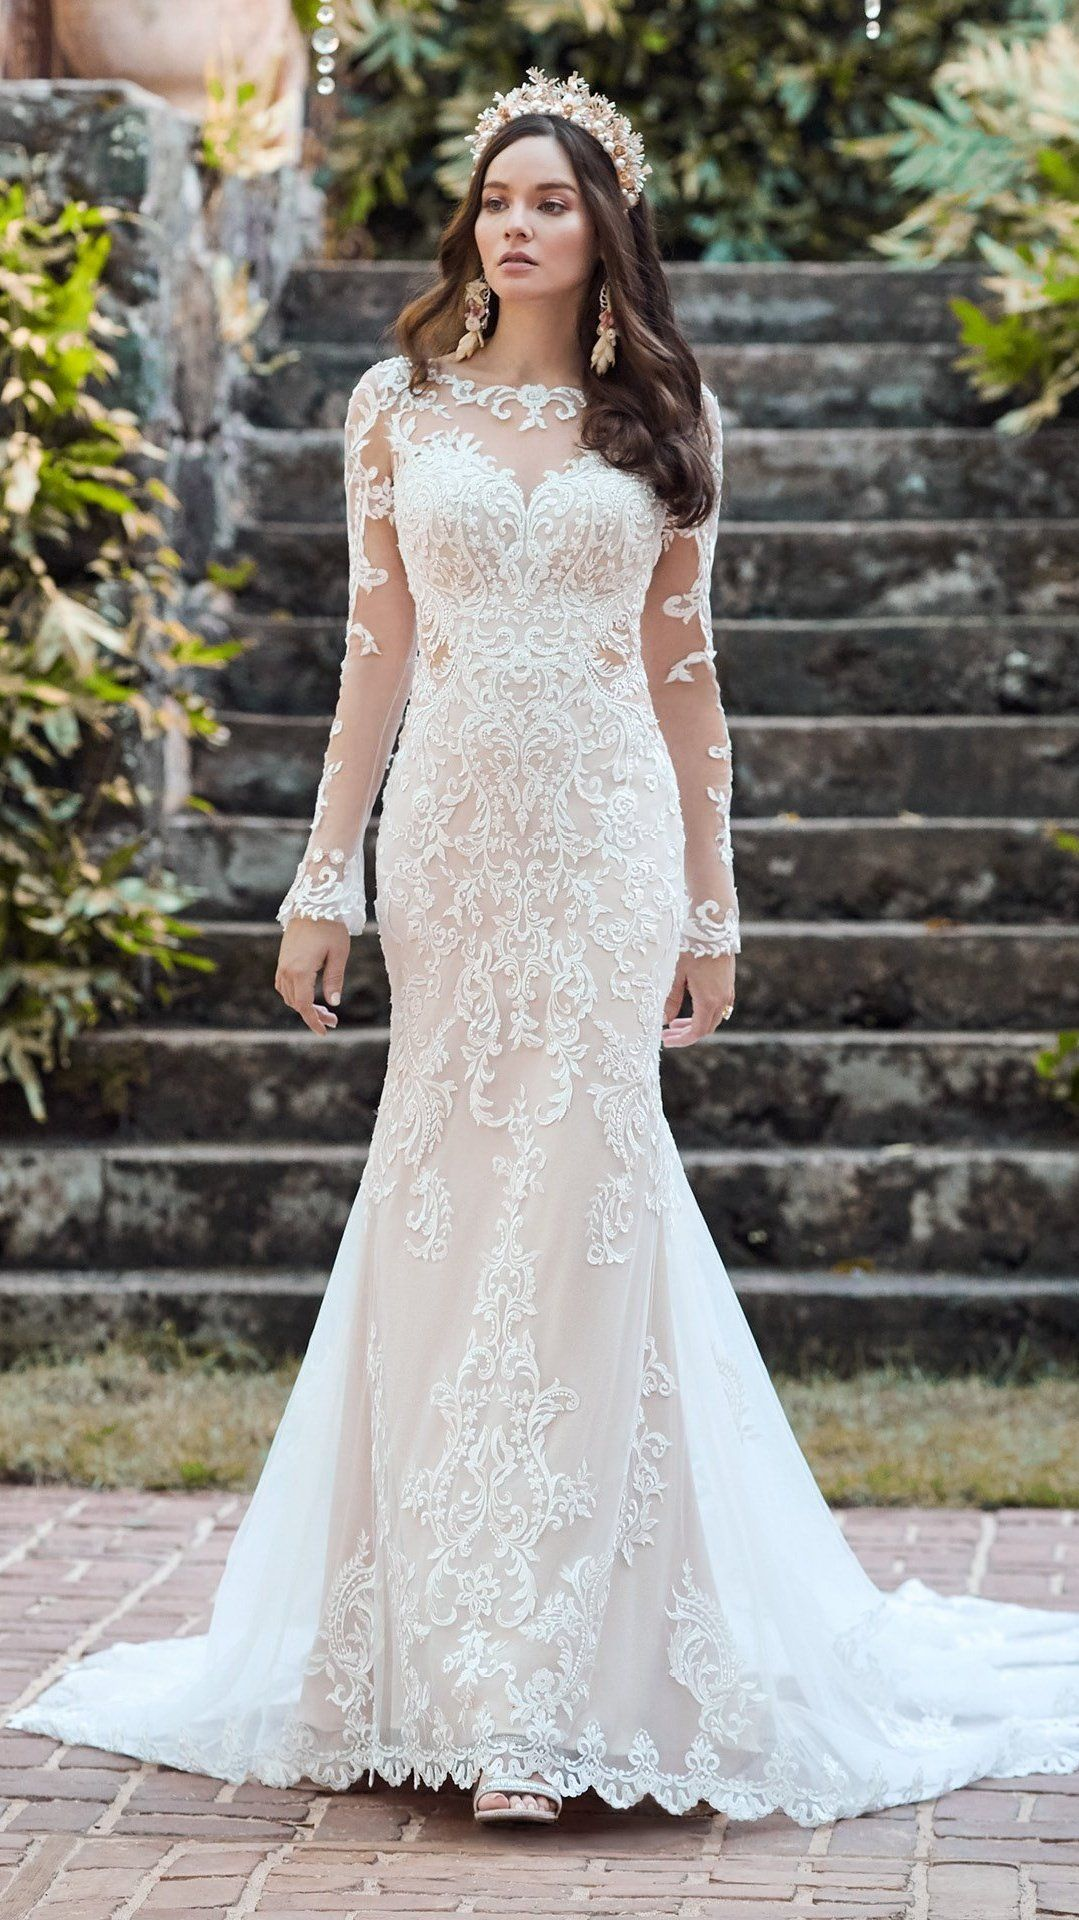 Lydia By Maggie Sottero Wedding Dresses And Accessories Wedding Dress Long Sleeve Wedding Dresses Wedding Dress Sleeves [ 1920 x 1079 Pixel ]